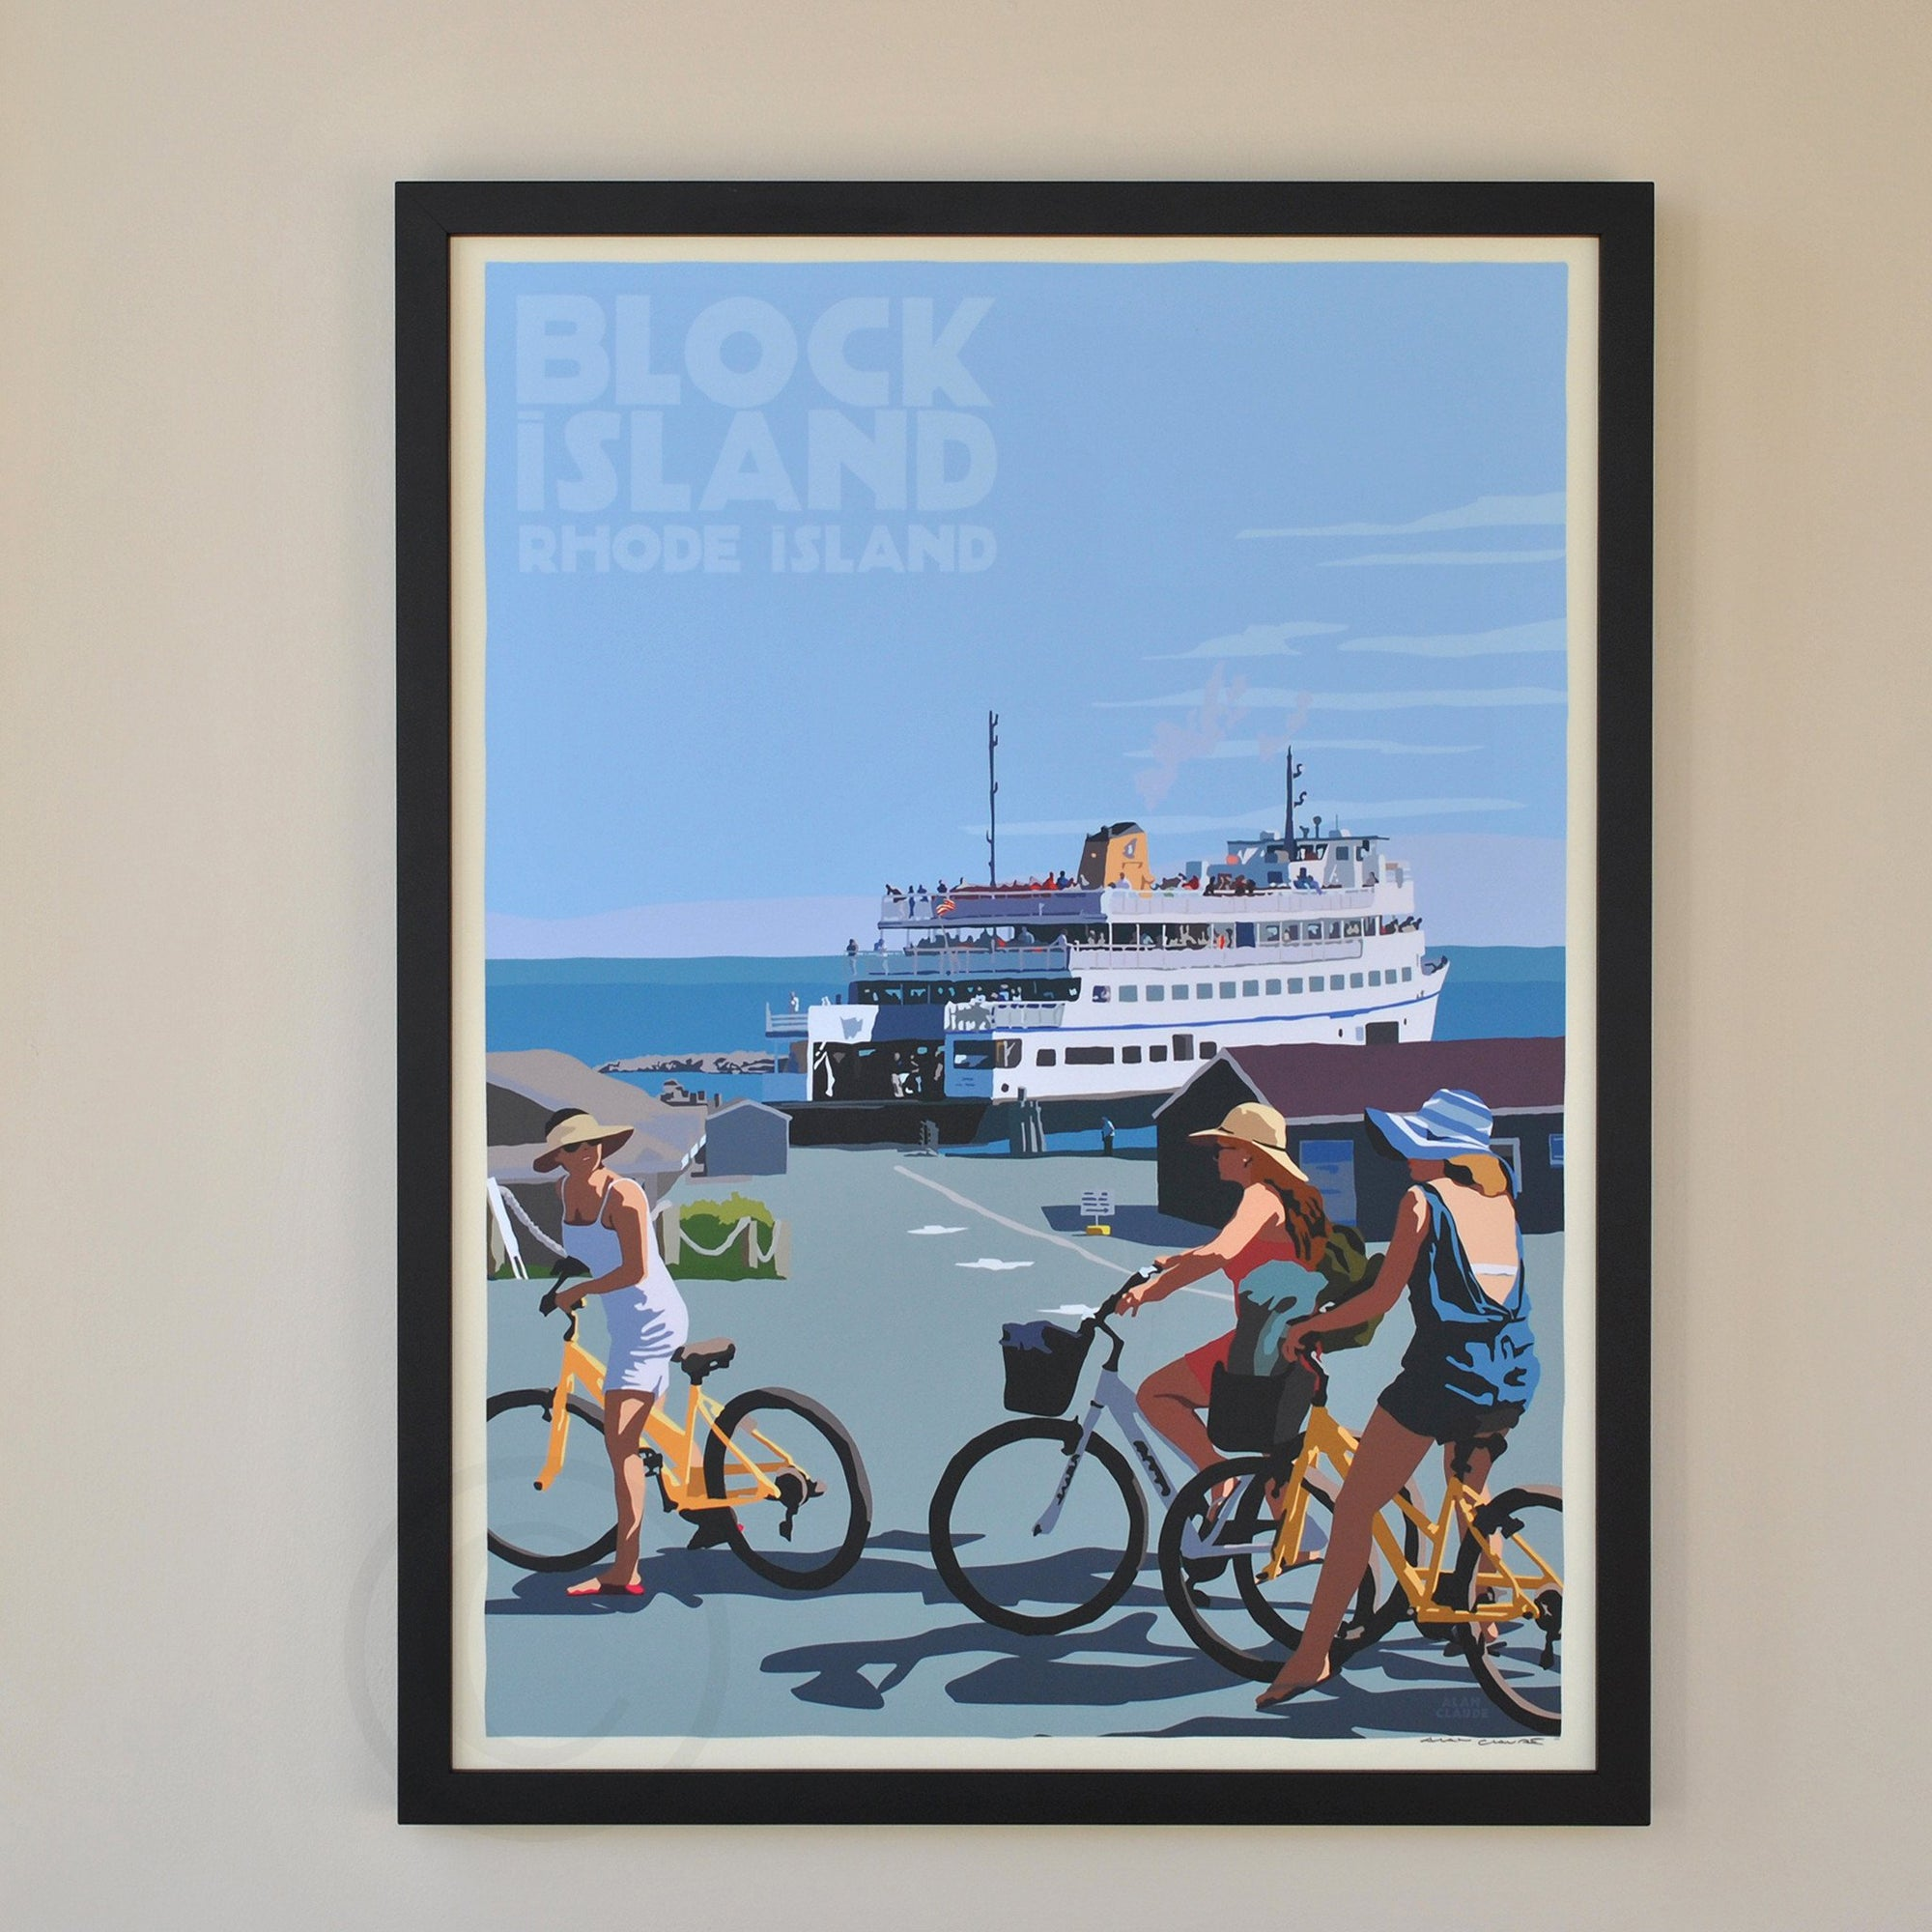 "Block Island Bicycle Girls Art Print 18"" x 24"" Framed Travel Poster - Rhode Island"